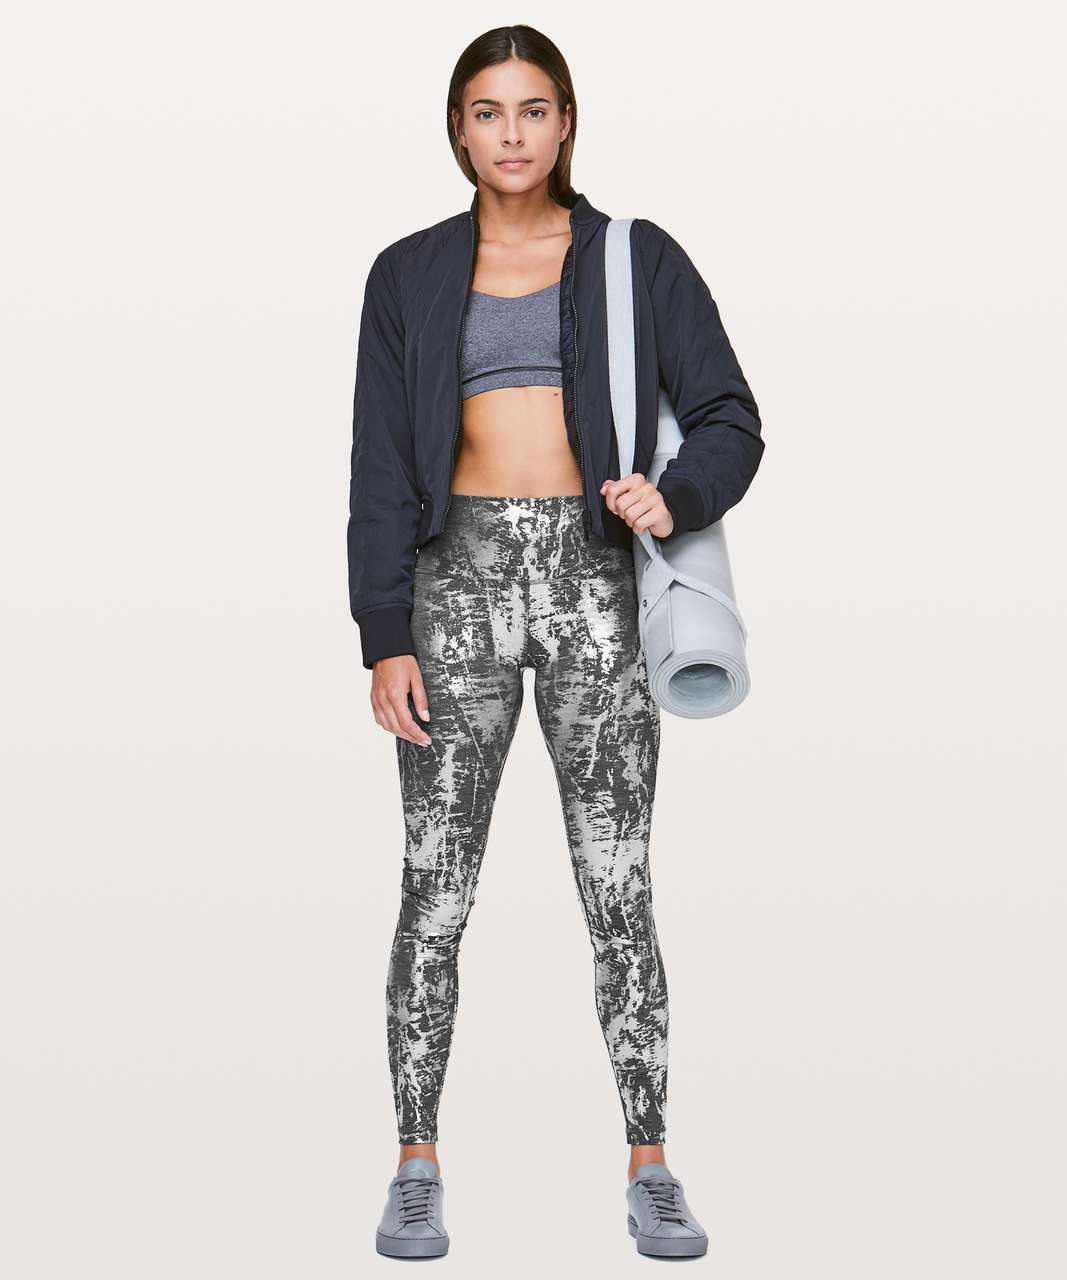 "Lululemon Wunder Under Hi-Rise Tight *Brindle Foil 28"" - Crinkle Heather Brindle High Shine Foil"